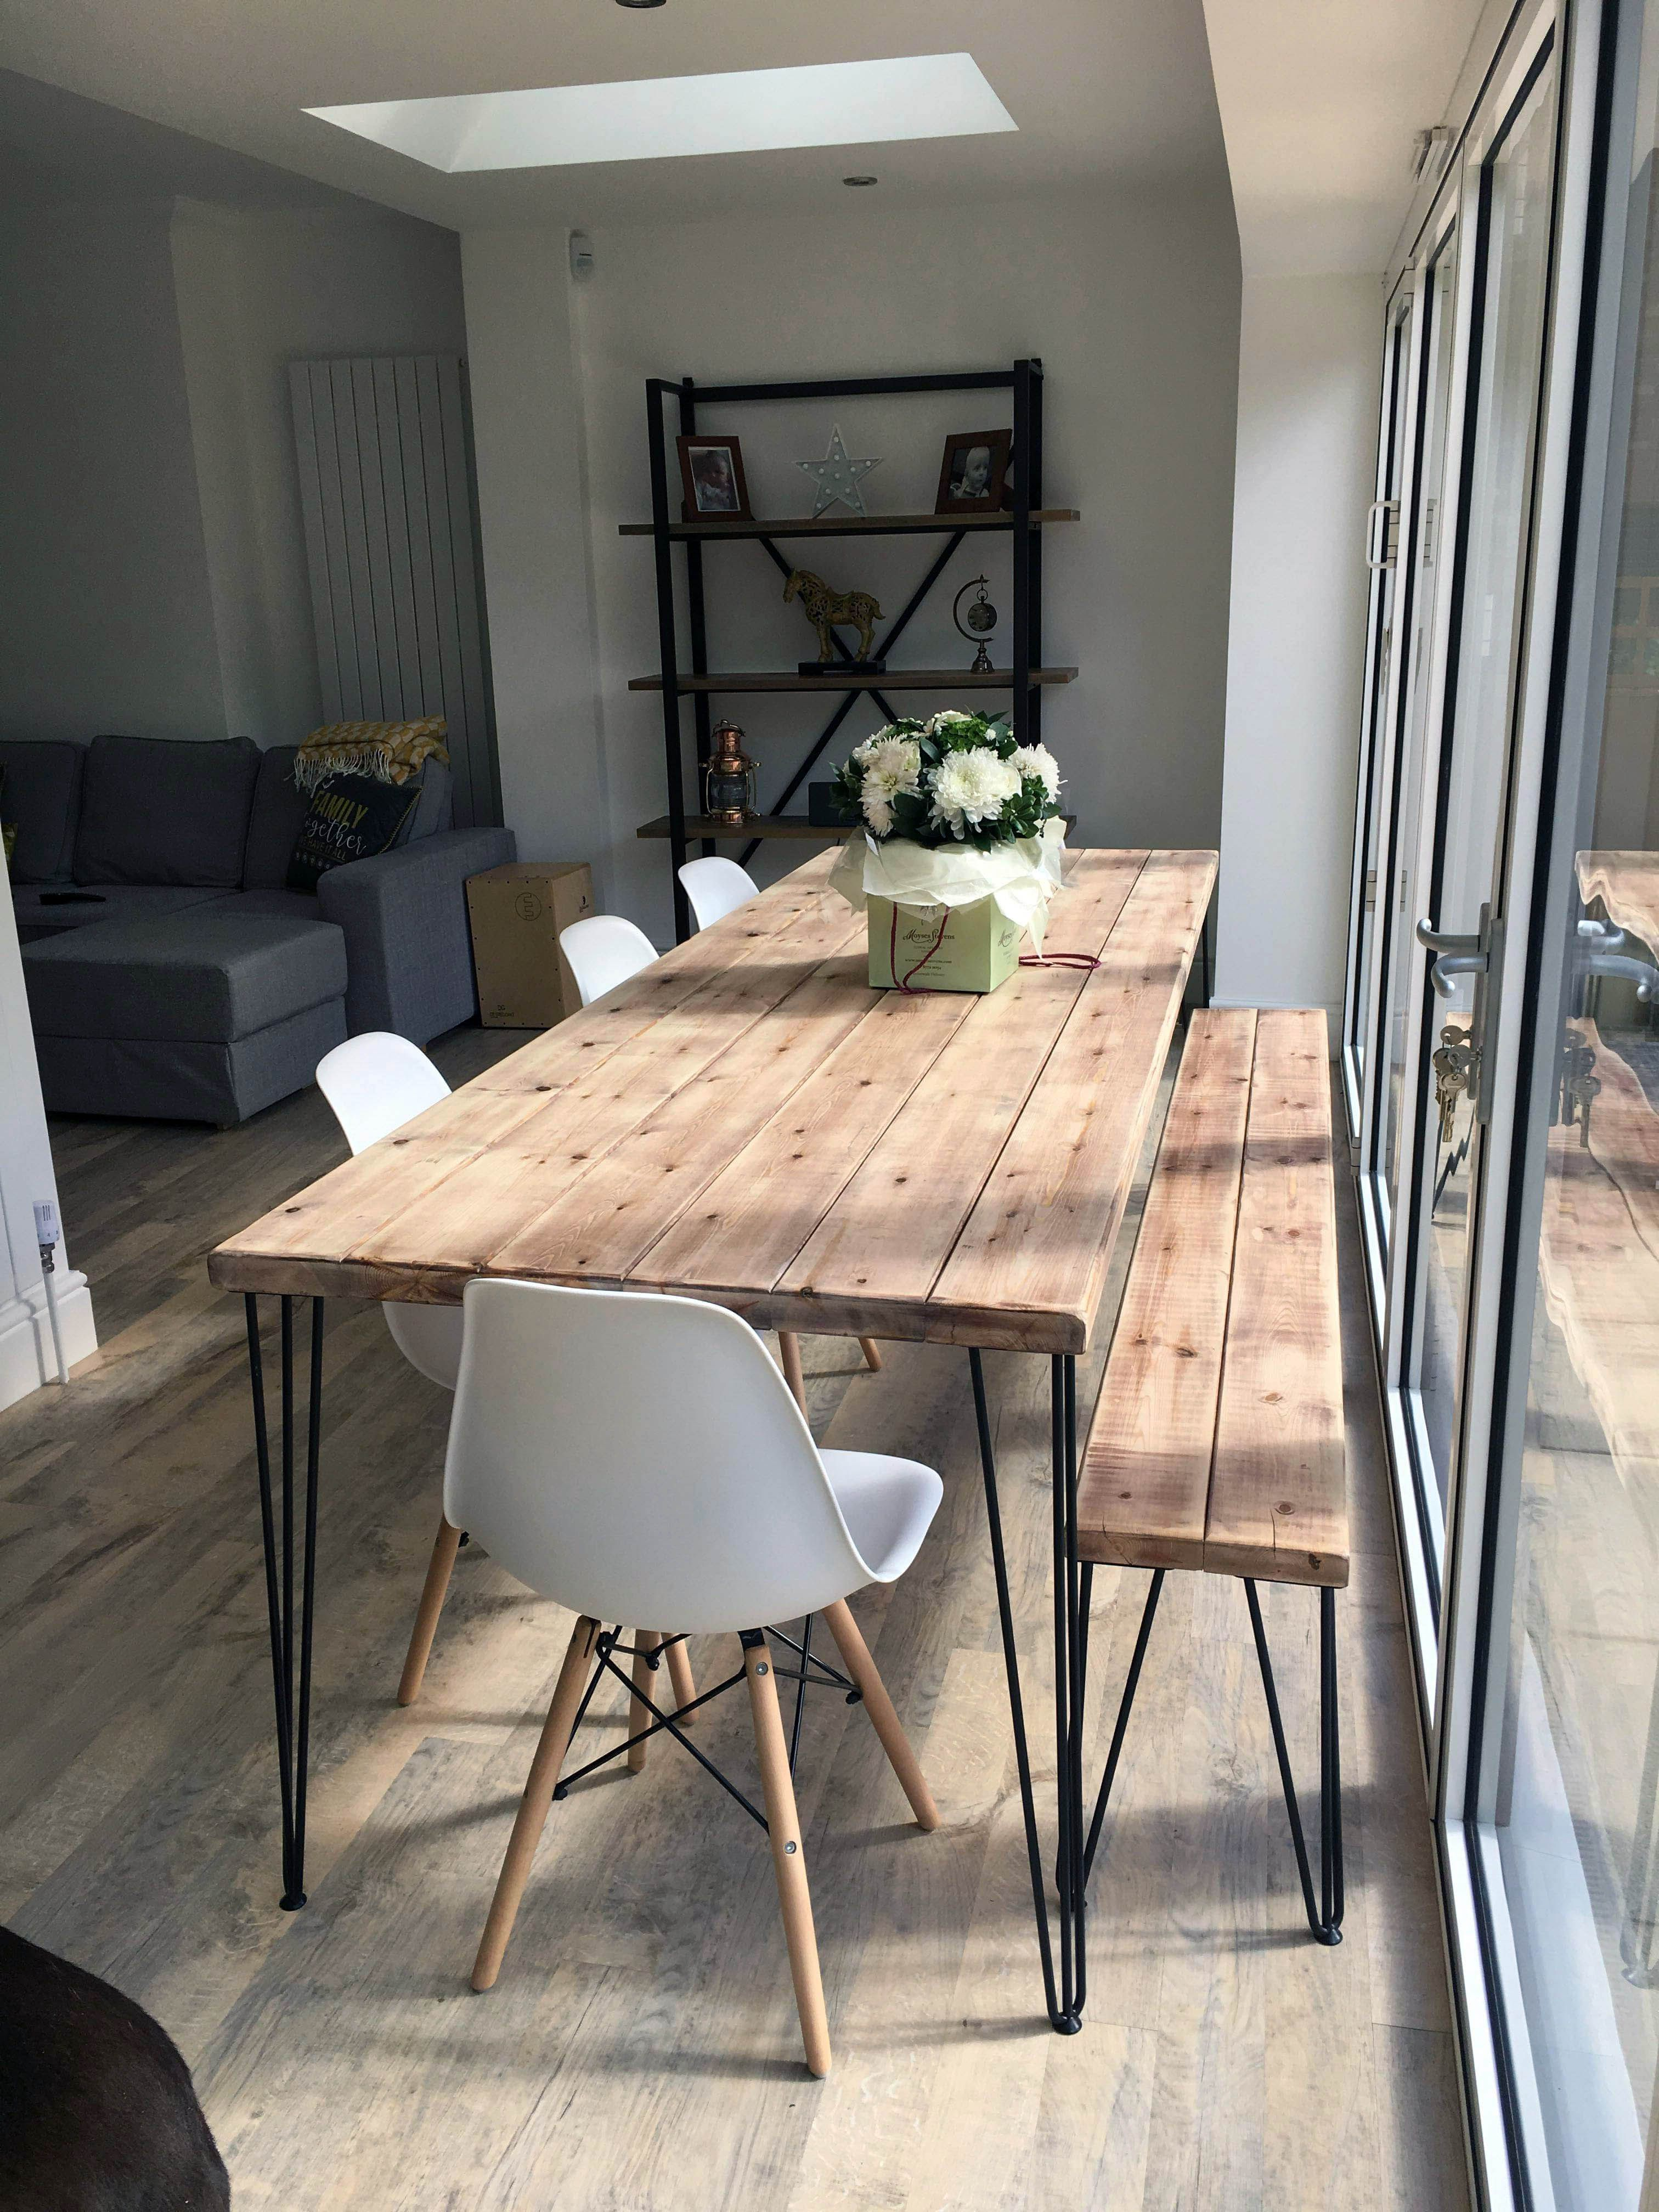 Free Dining Table 70x35 In Shining Lacquer Dining Table Round